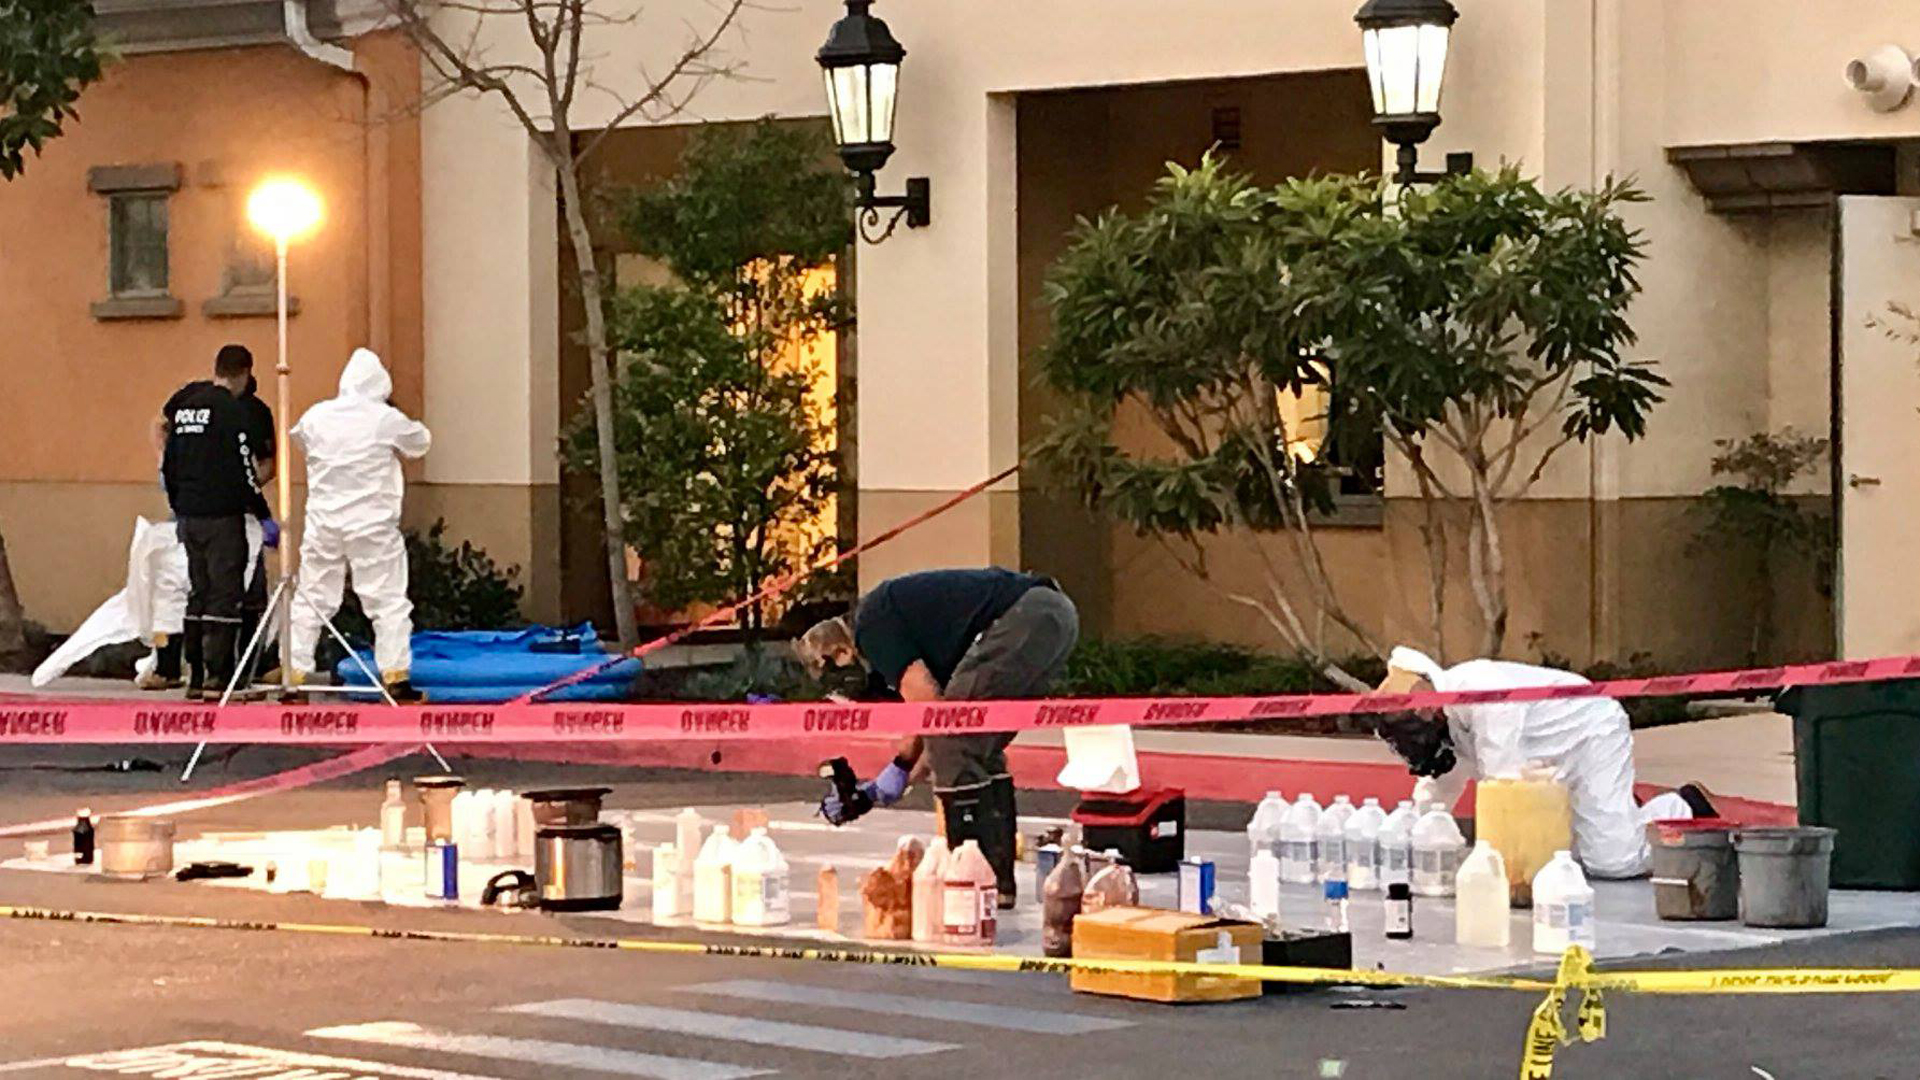 A drug lab was discovered inside a Marriott hotel in Goleta on Jan. 29, 2019. (Credit: Santa Barbara County Sheriff's Office)